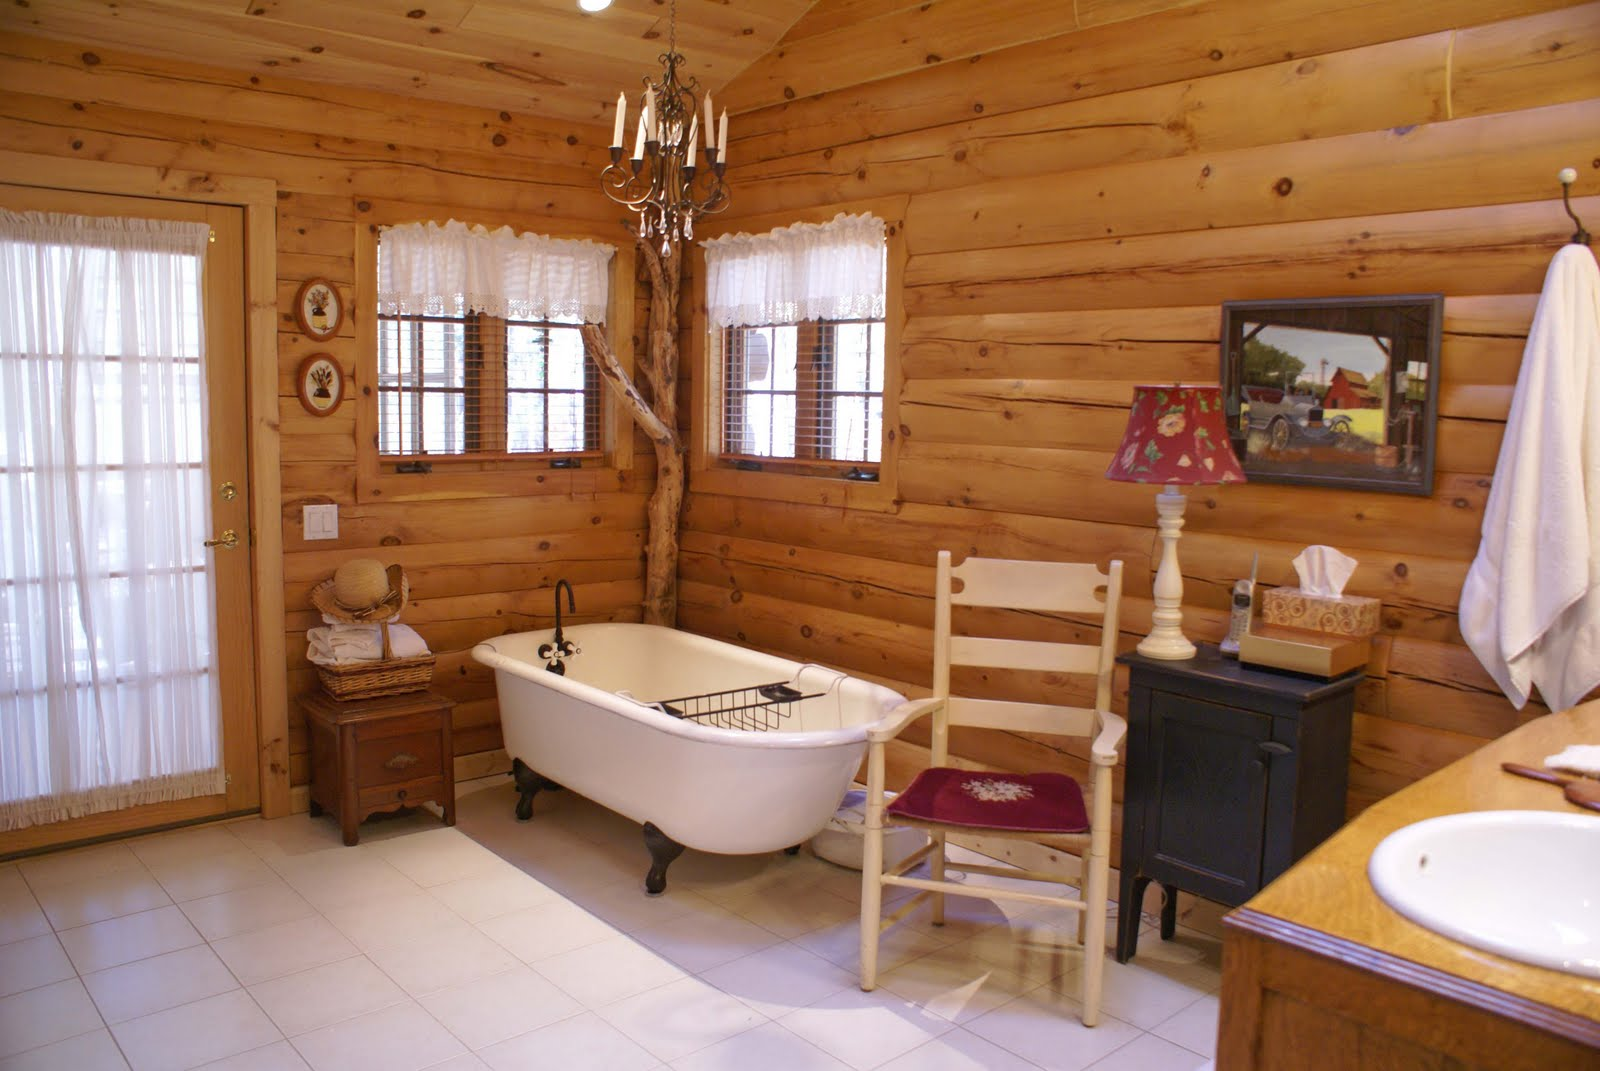 Log home thoughts round log walls or flat d log walls - Log home interior designs with photos ...